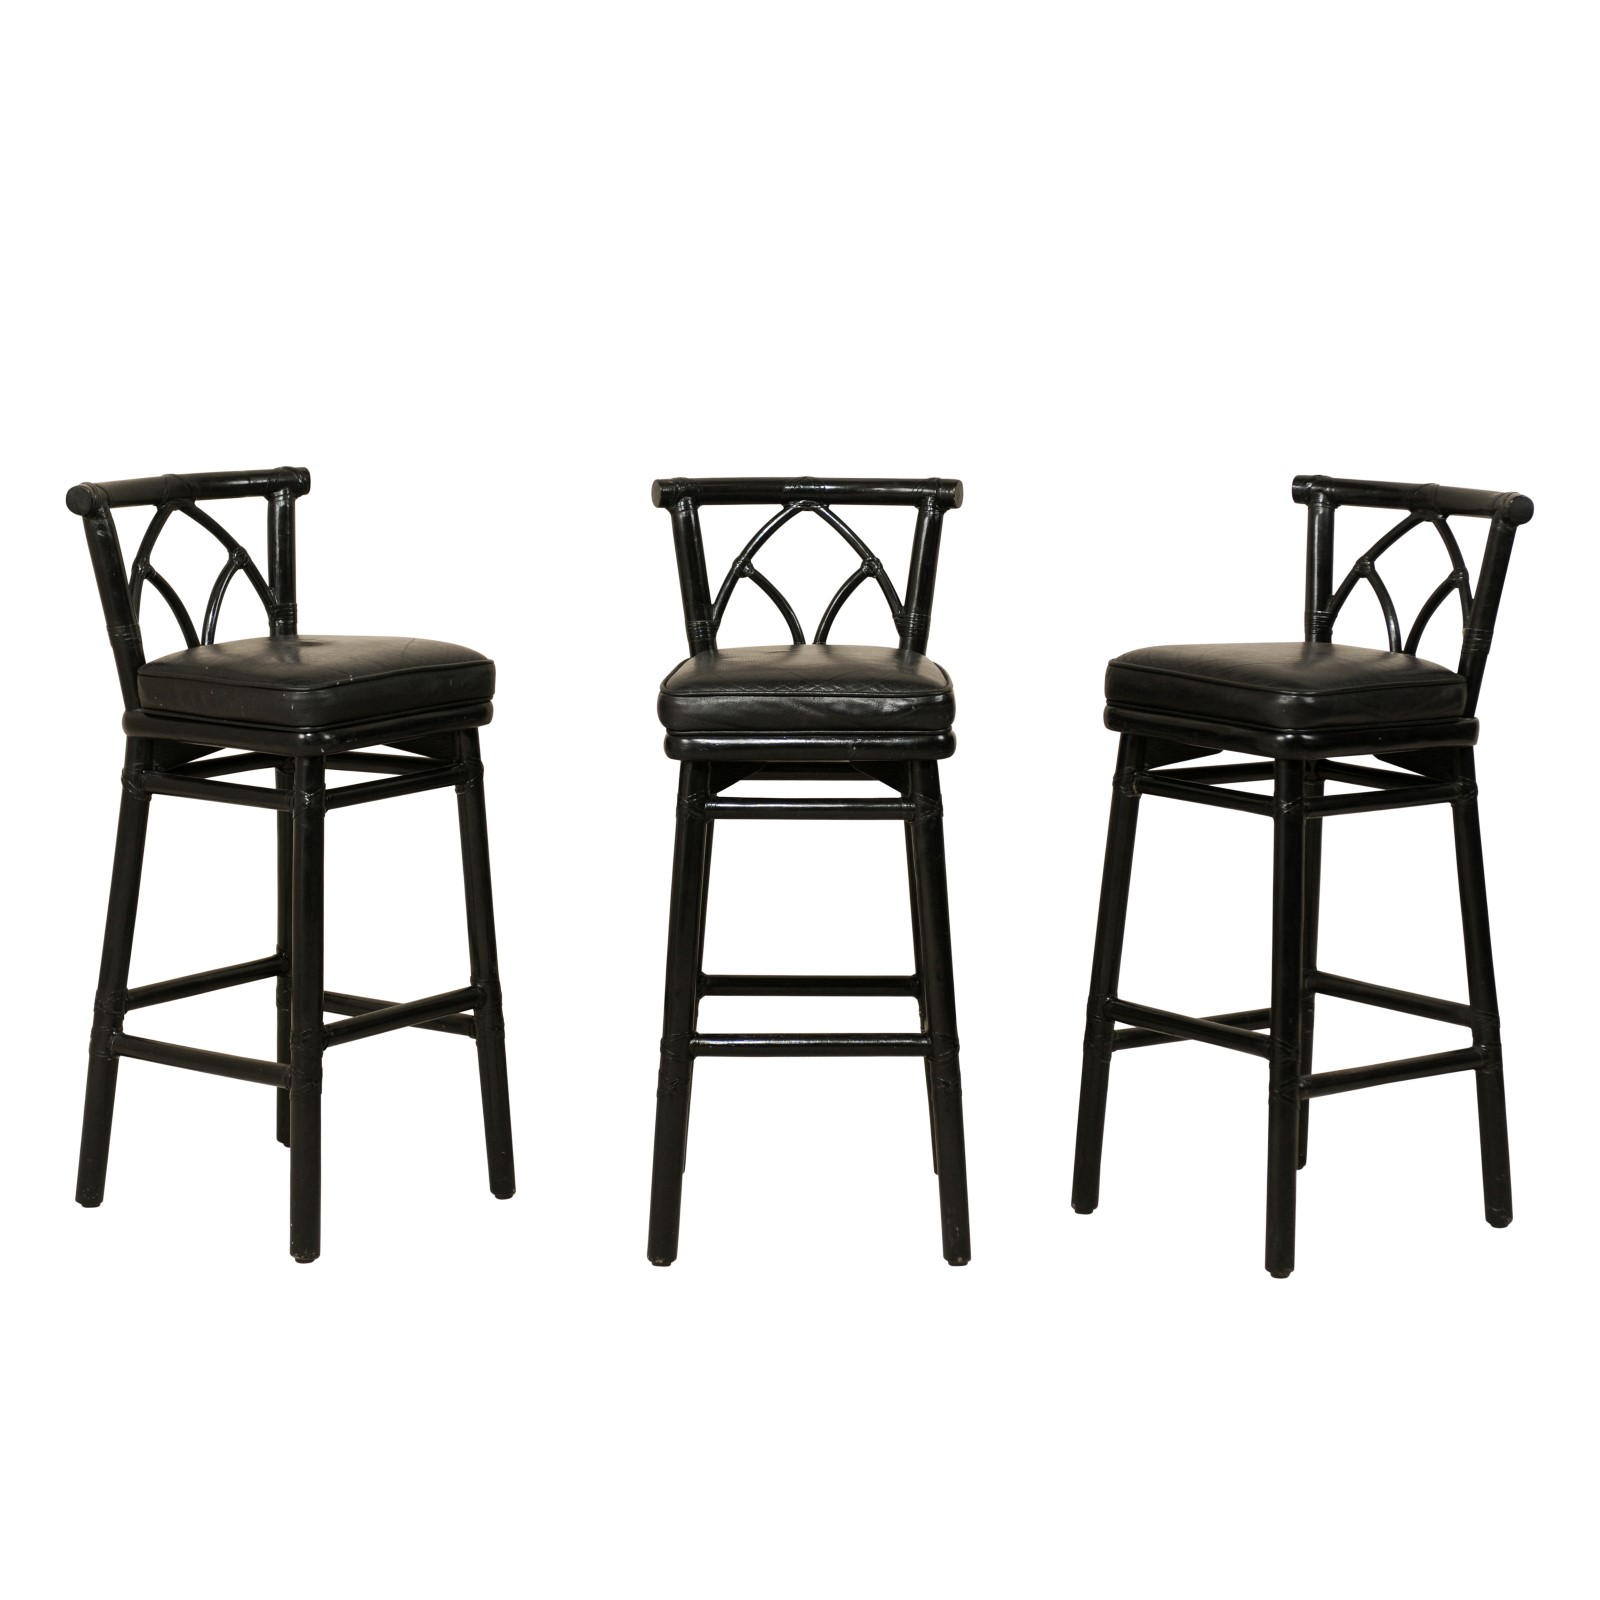 Set of McGuire Rattan Bar Stools